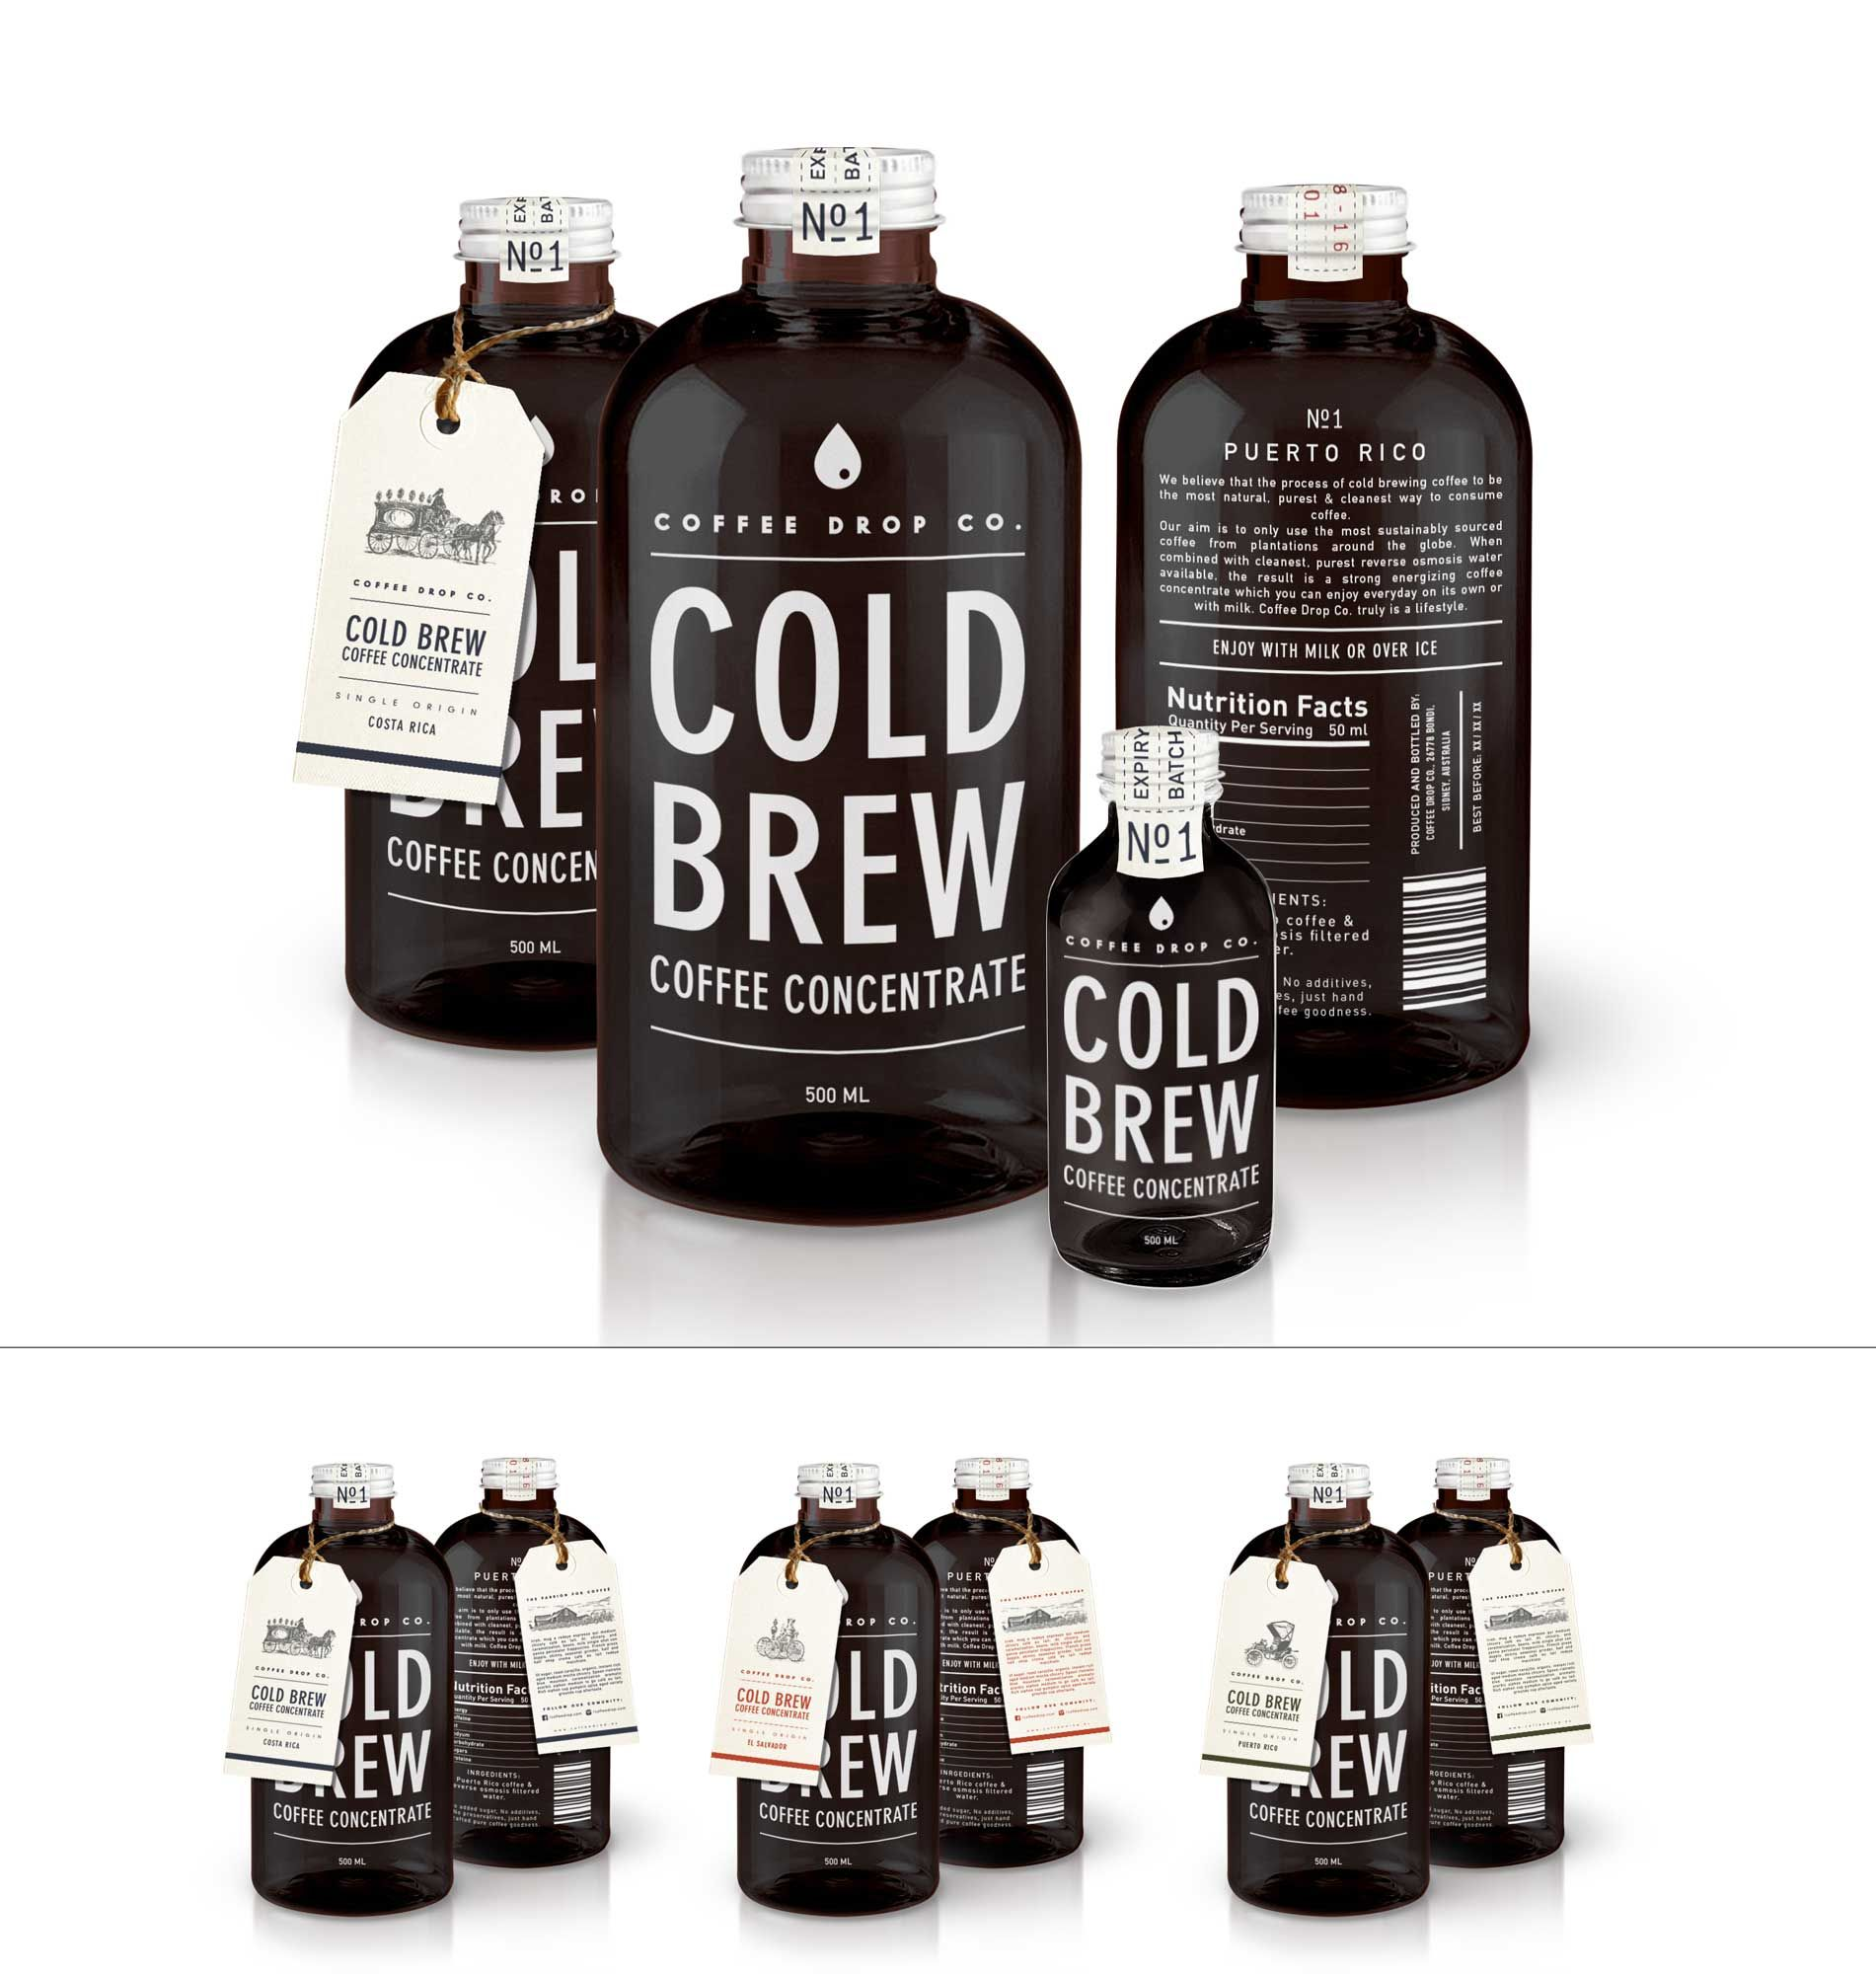 Coffee Drop Co. Cold Brew Packaging Coffee label, Cold